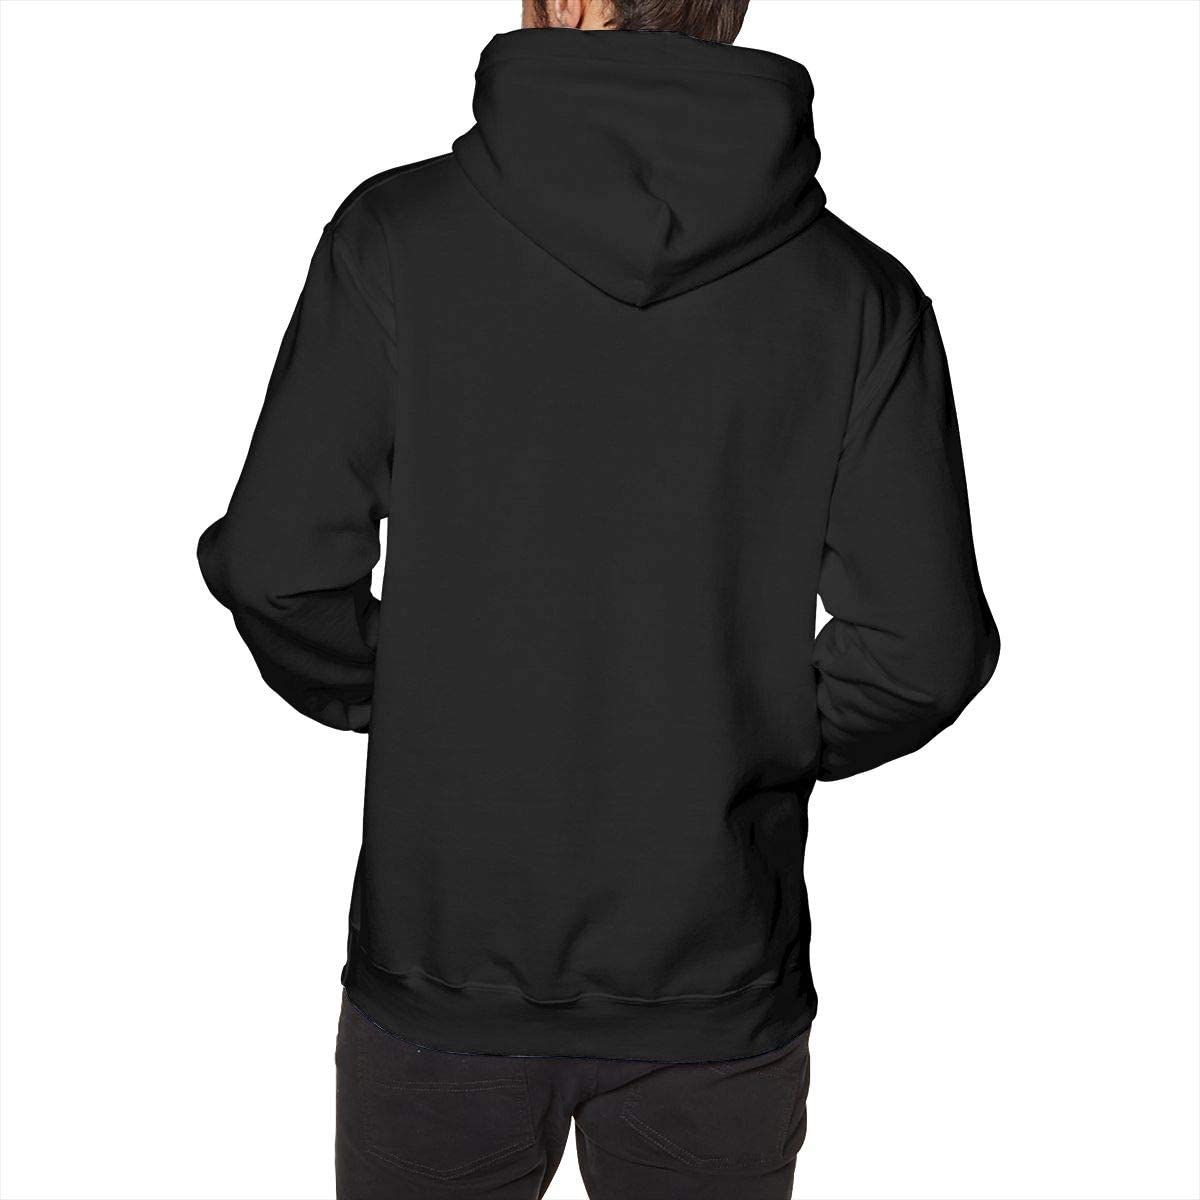 Lemonationob Pewdiepie Comfort Mens Hoodie Without Pocket